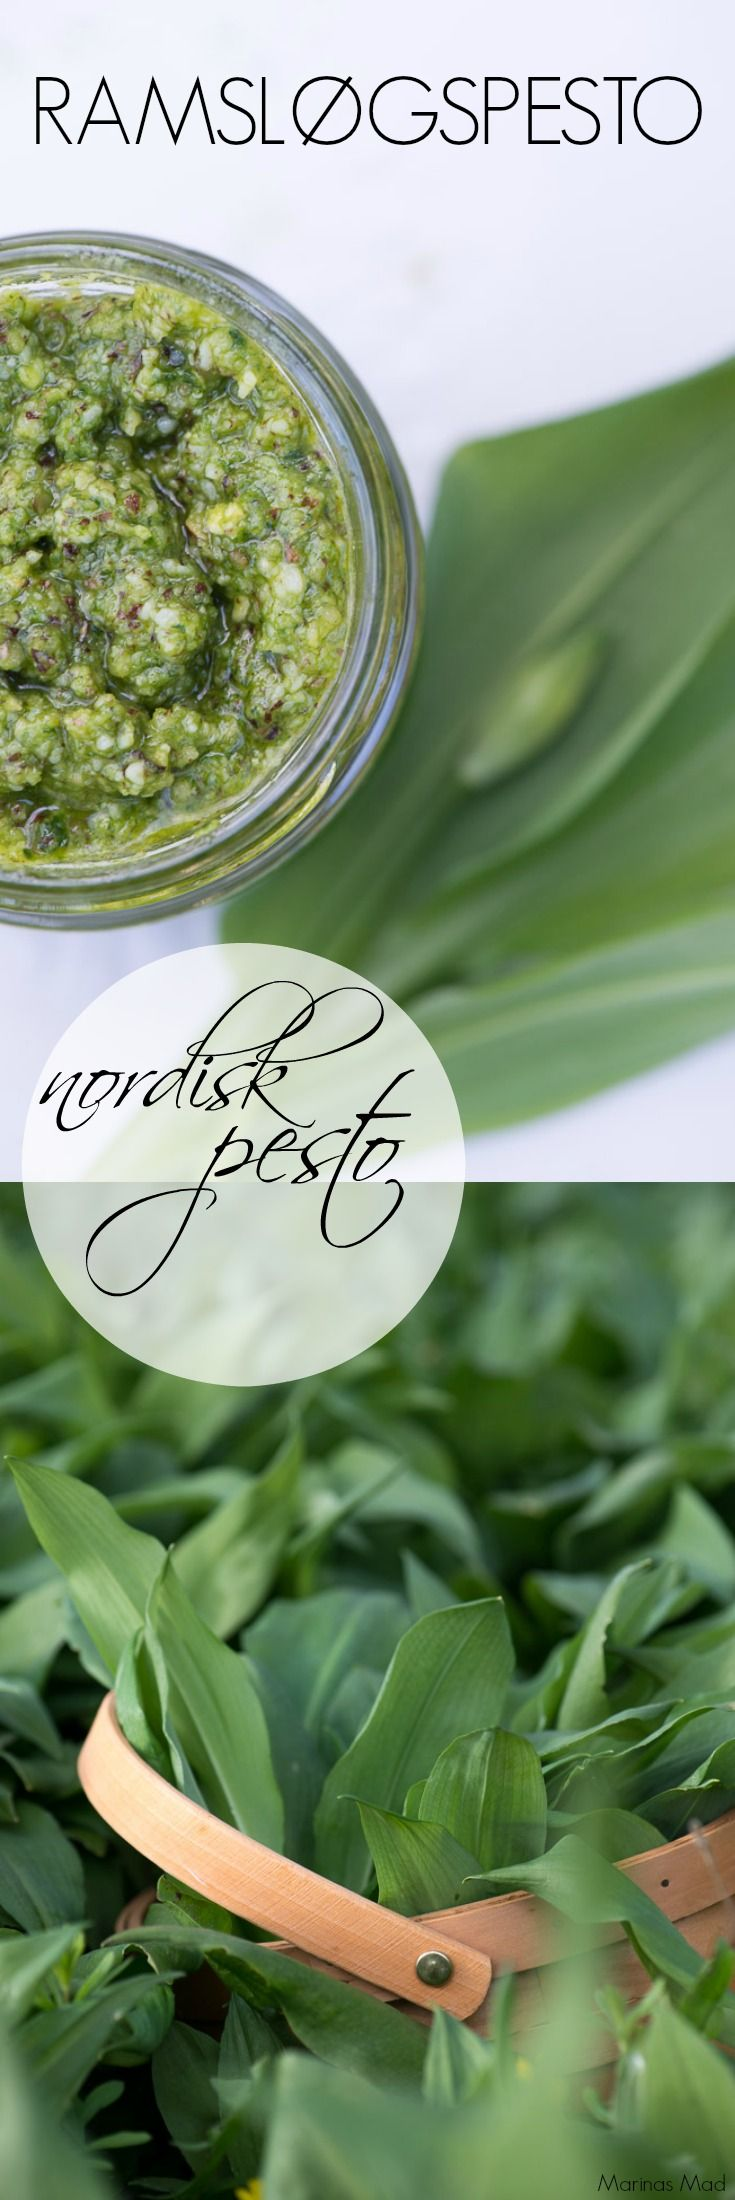 SPRING 1: Spring picture with a recipe for wild garlic pesto